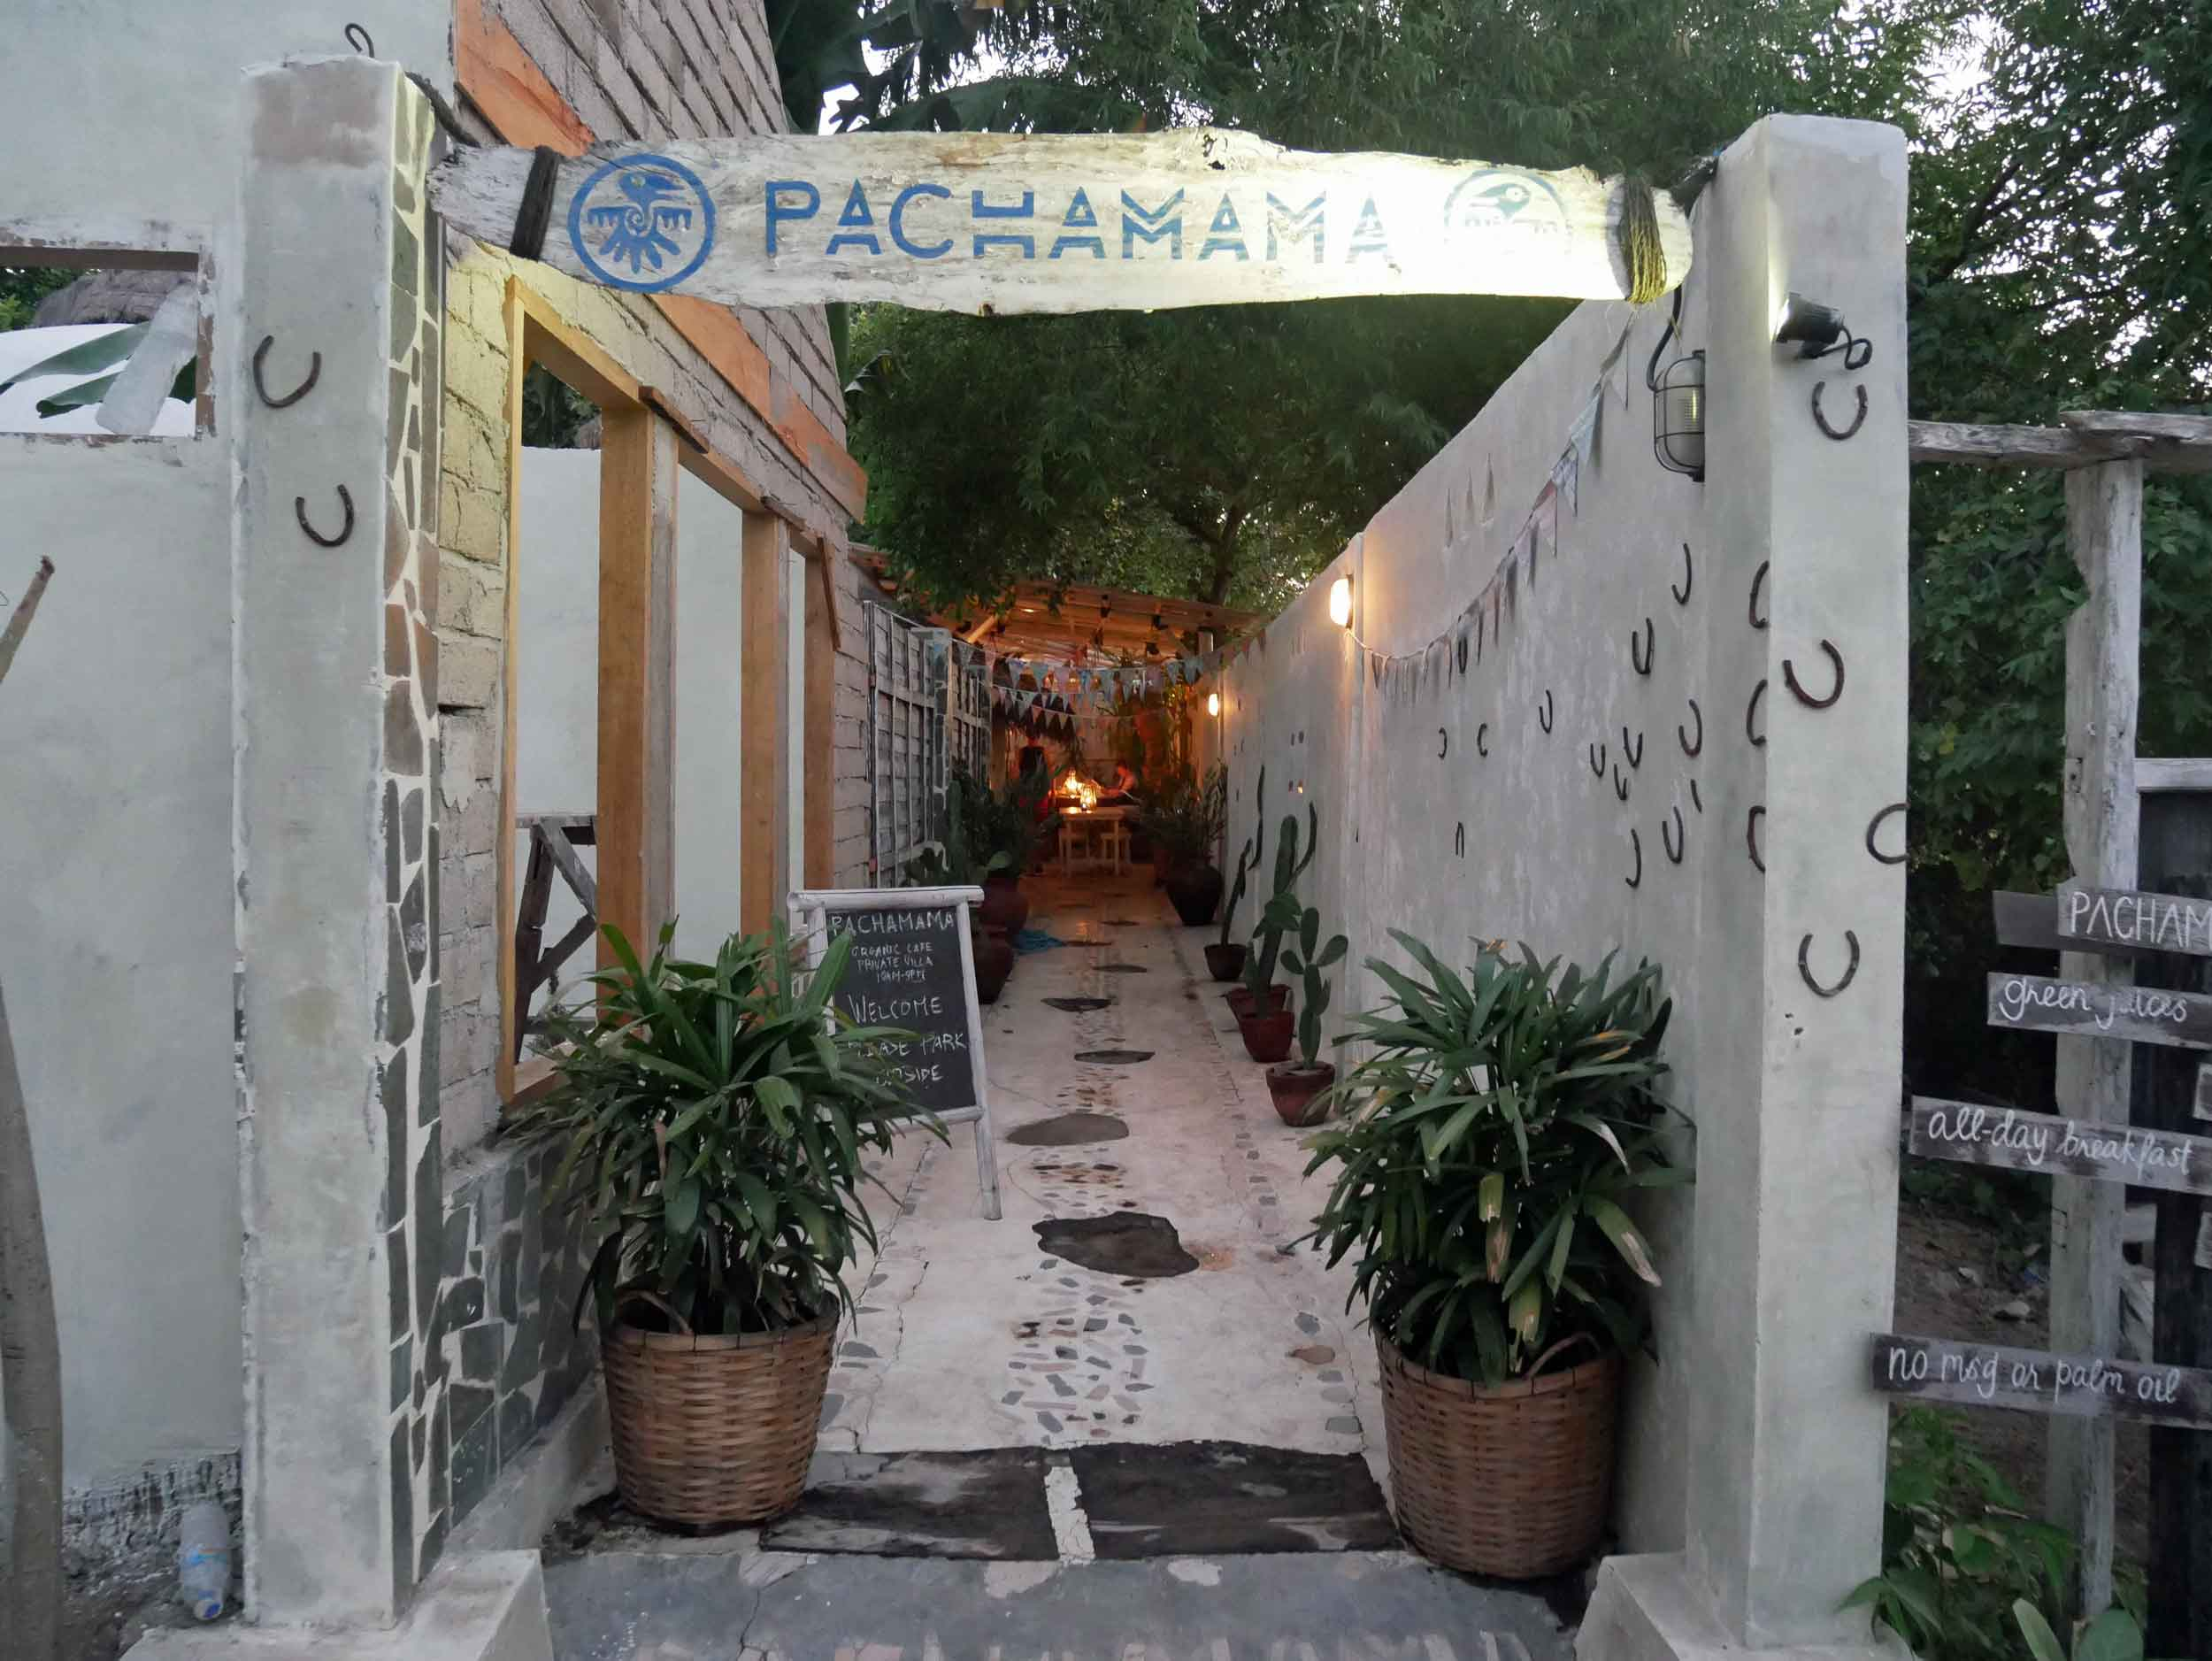 We felt right at home at Pacha Mama with its understated design and menu of organic delights.